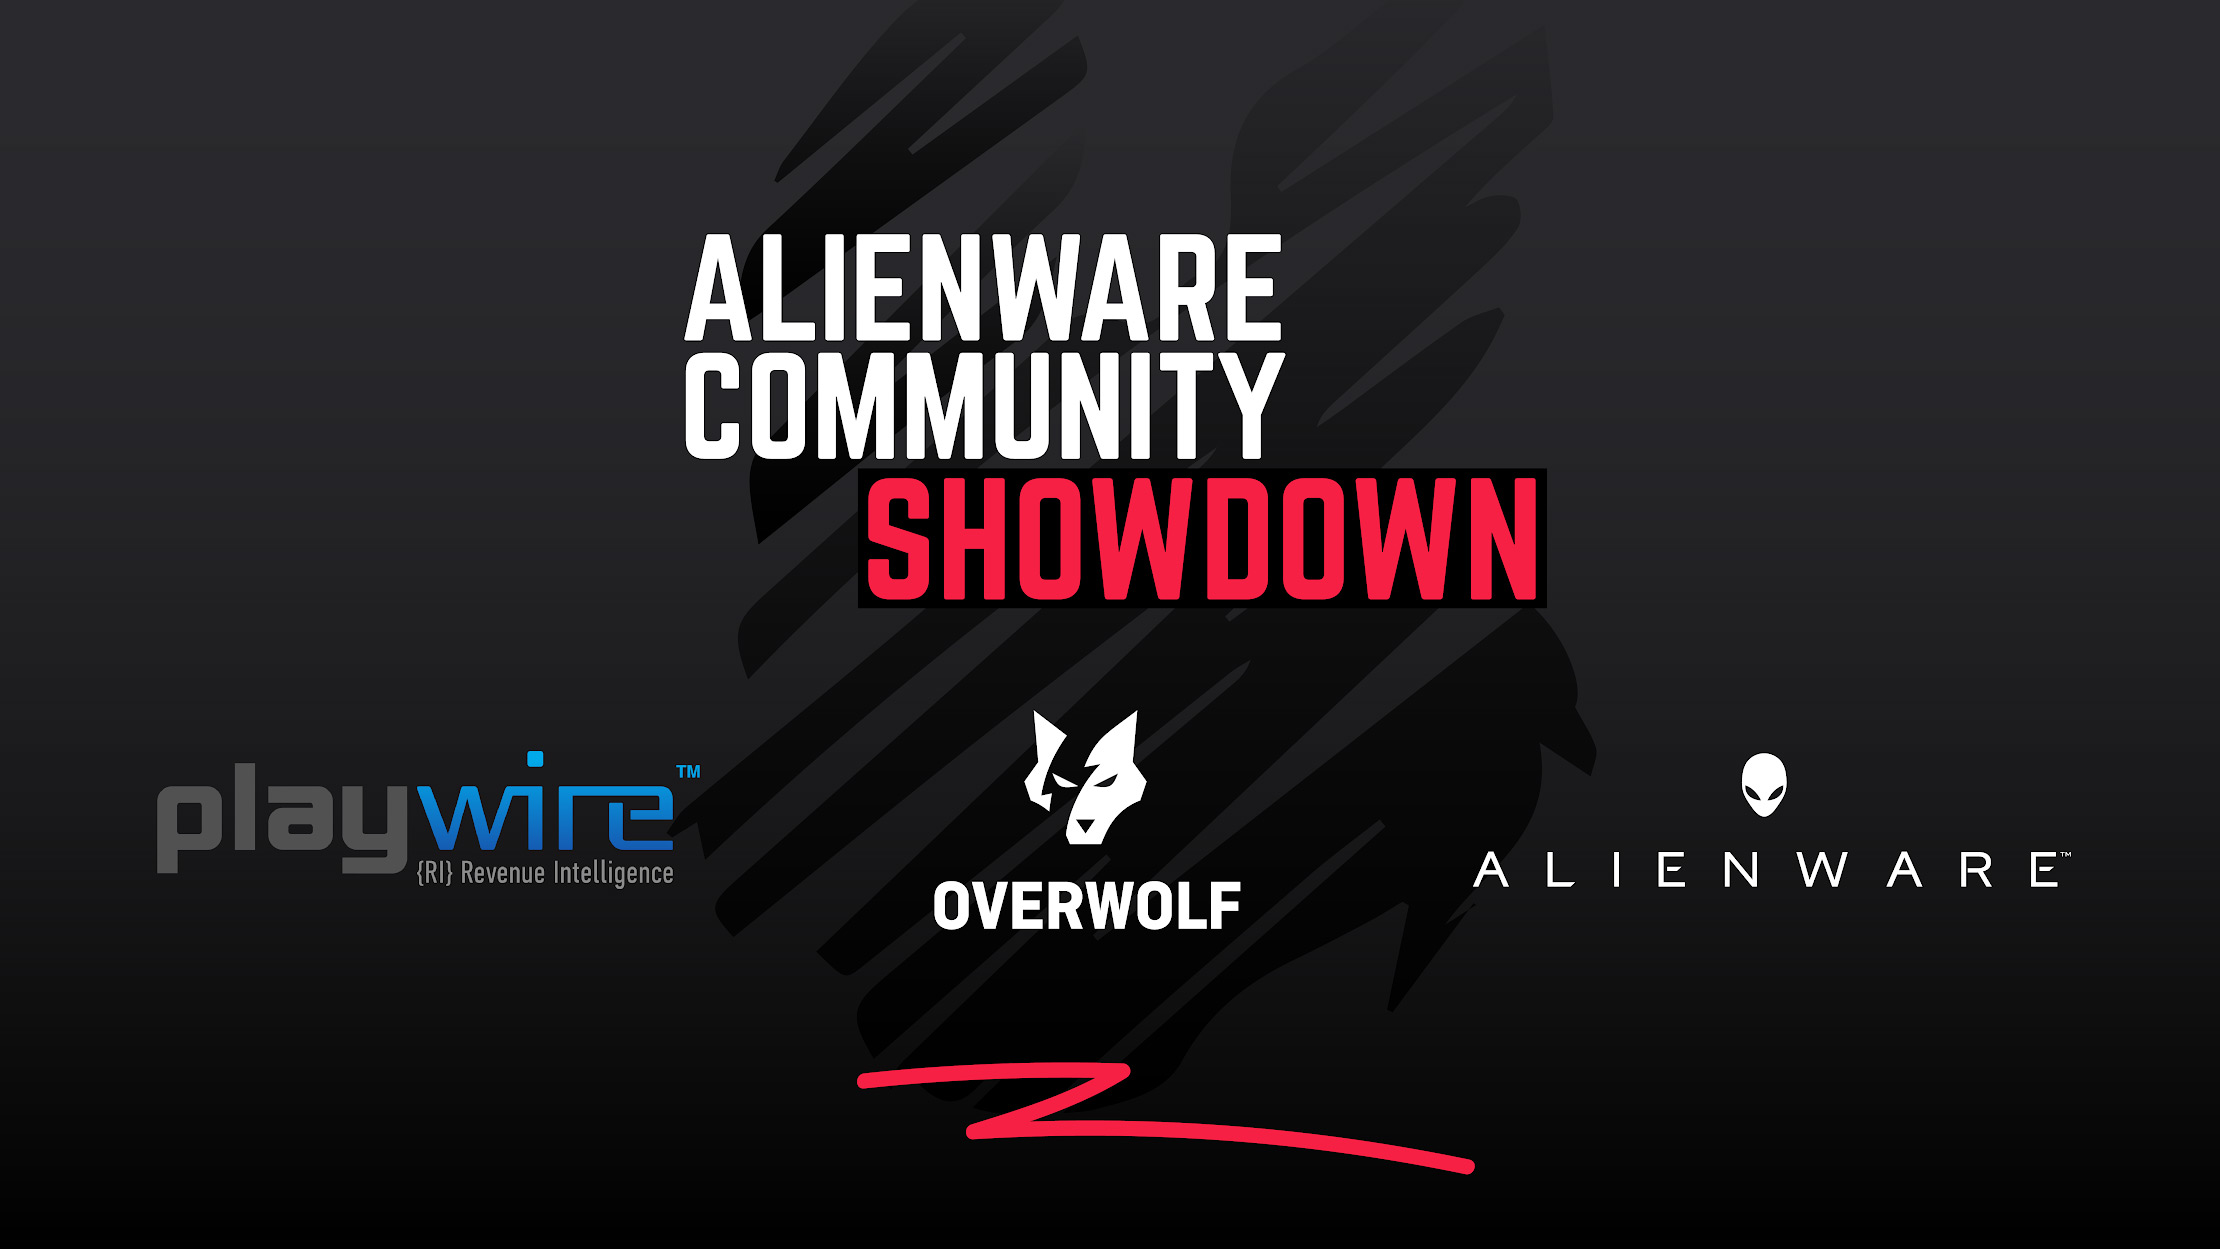 Alienware Launches Major Community Esports Challenge with Playwire & Overwolf